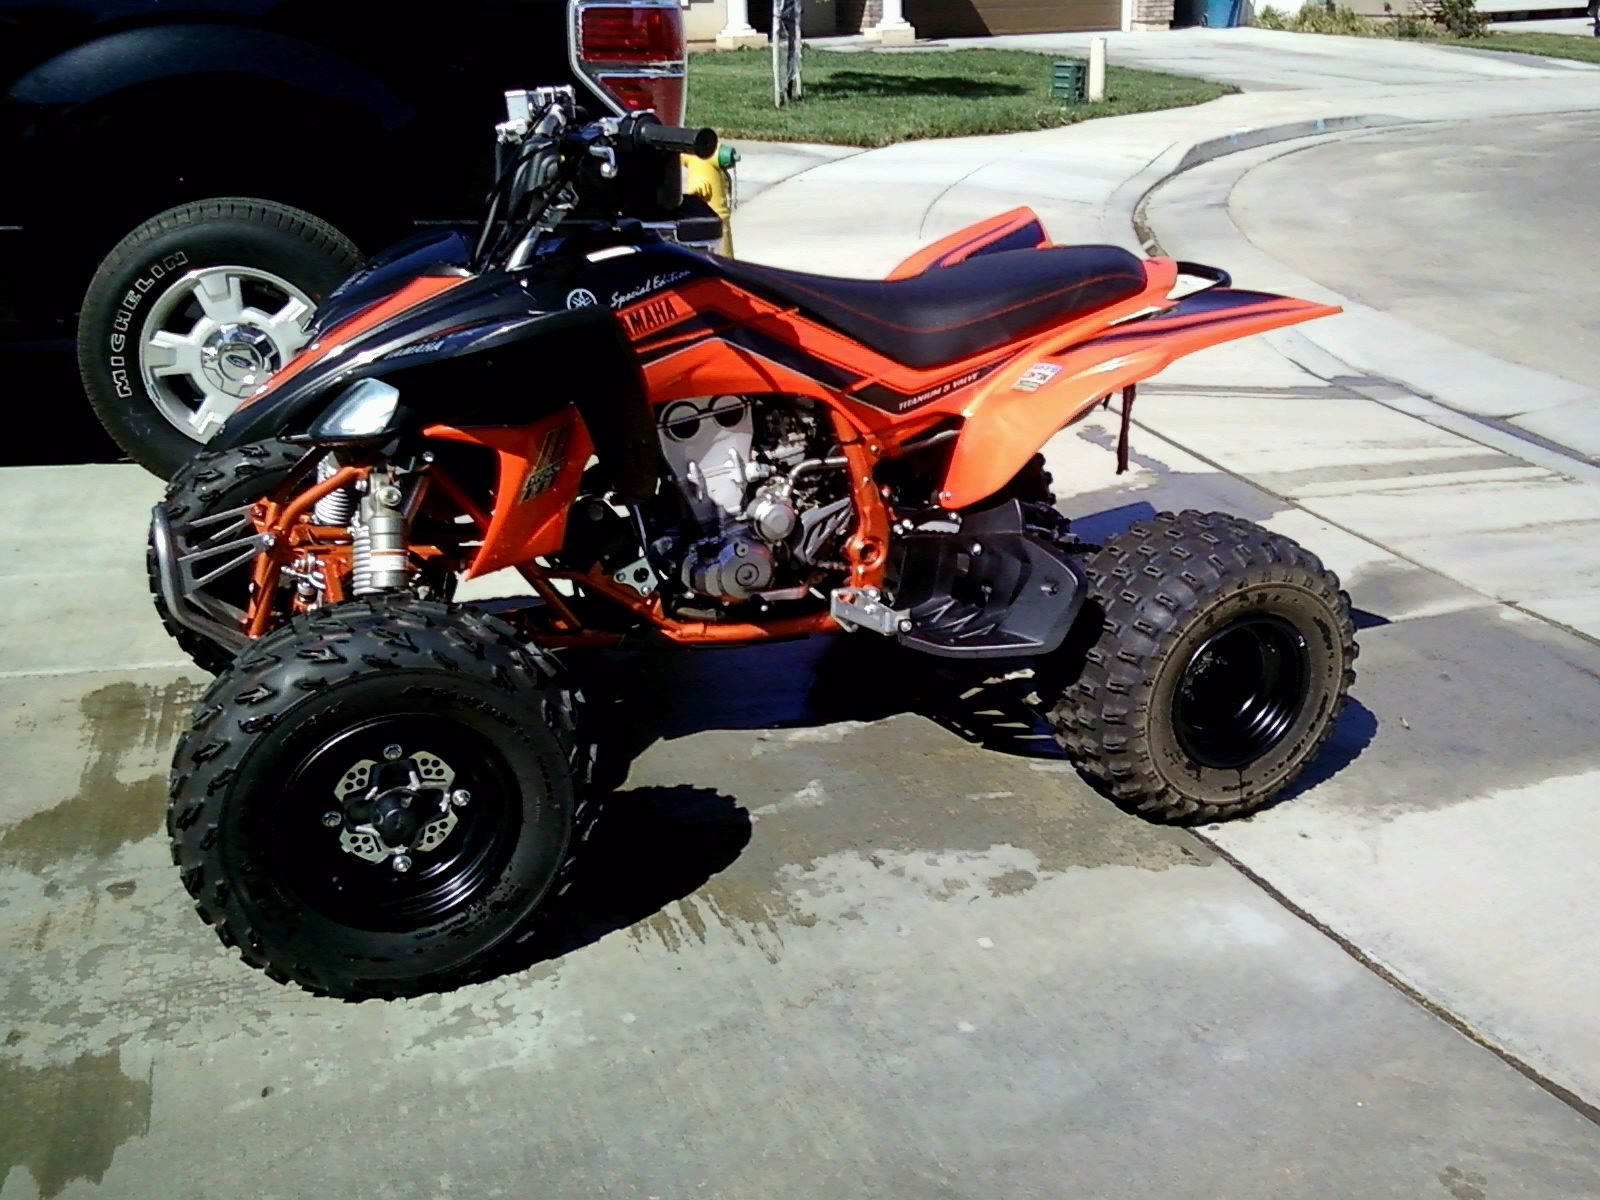 2008 yamaha yfz 450 limited edition black and orange atv